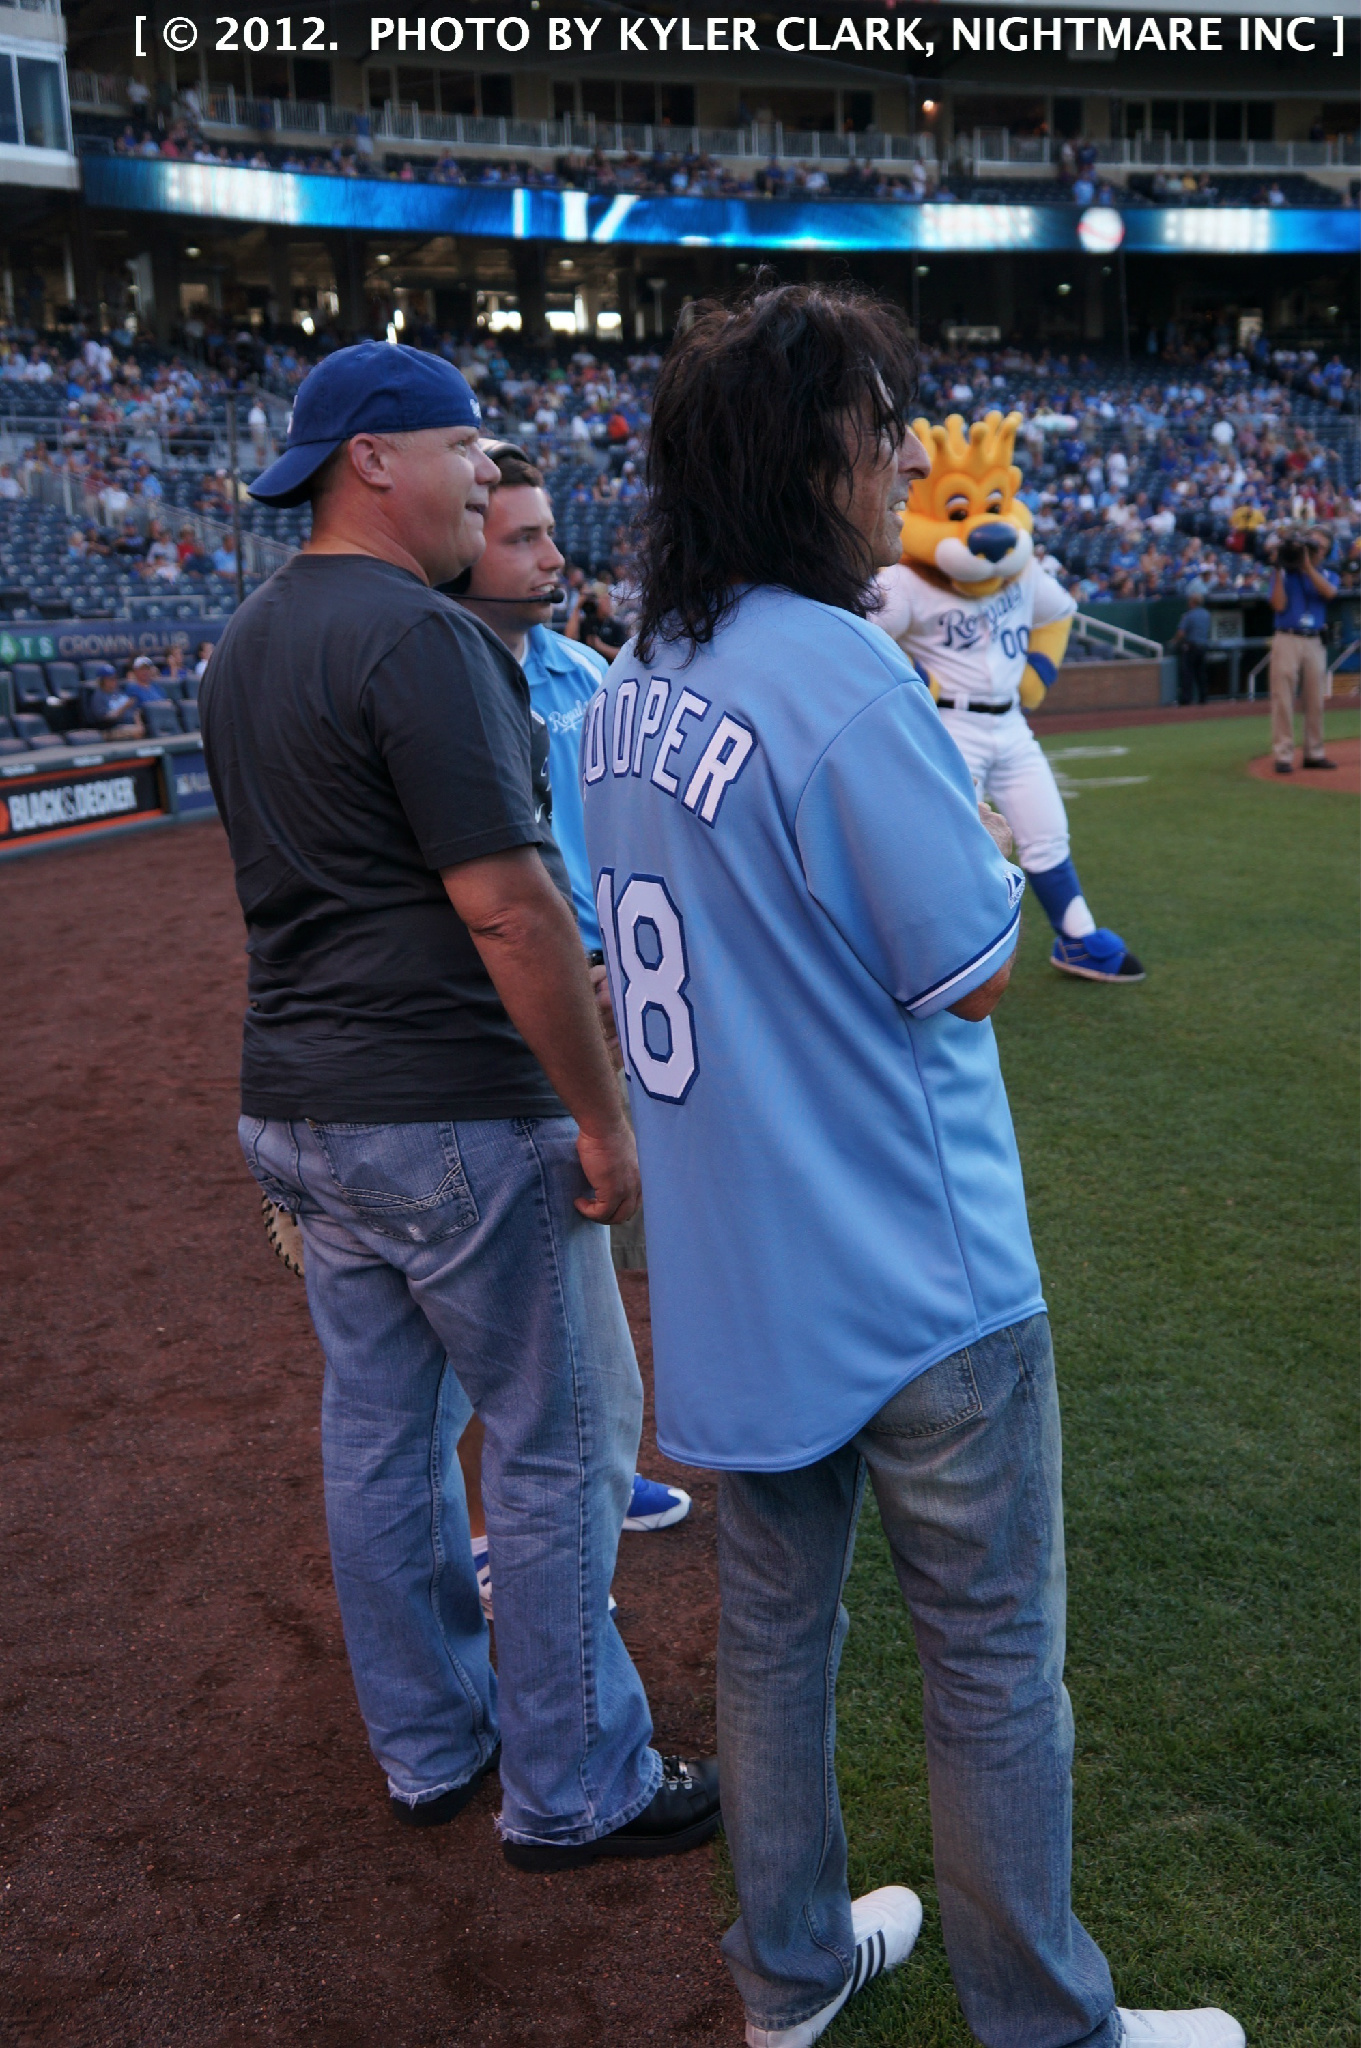 Just threw the first pitch at the @Royals game! Nice 'catch' @SlackerKC! You can be my wing man anytime. #KCRoyalTweets http://t.co/R6XlUanL